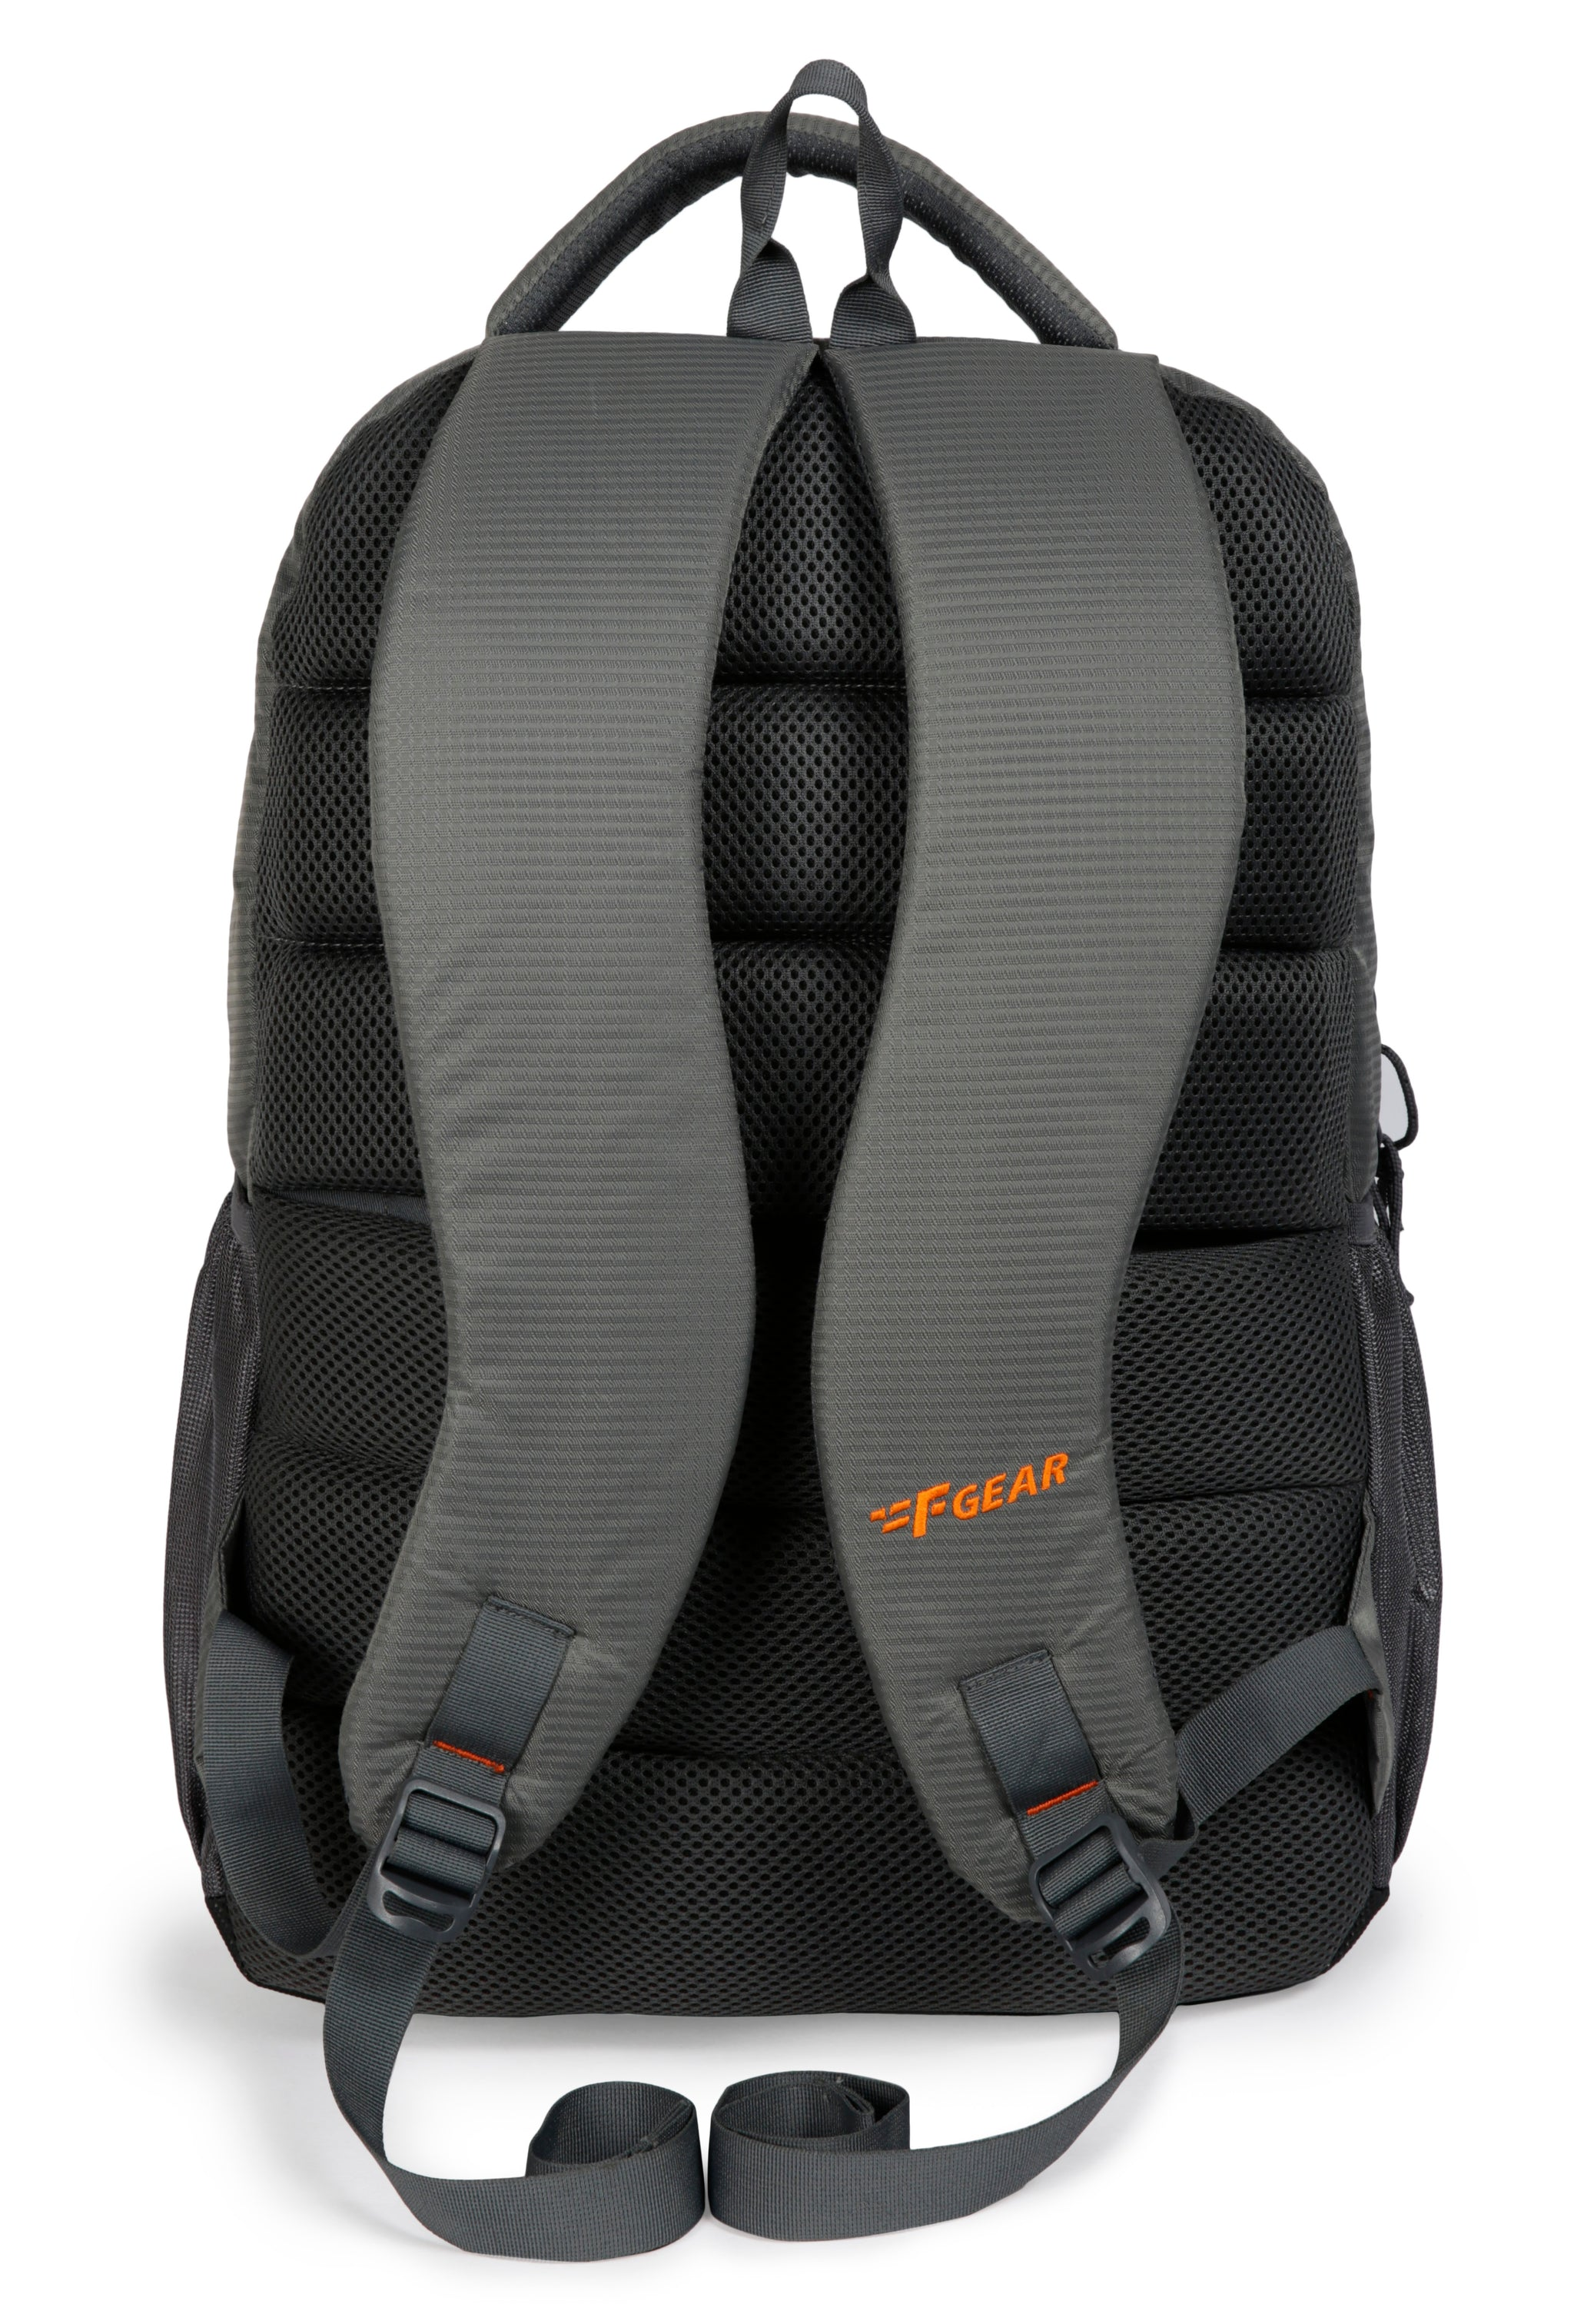 F Gear Amigo Doby 36 Ltrs Grey with Orange Casual Backpack (3222)